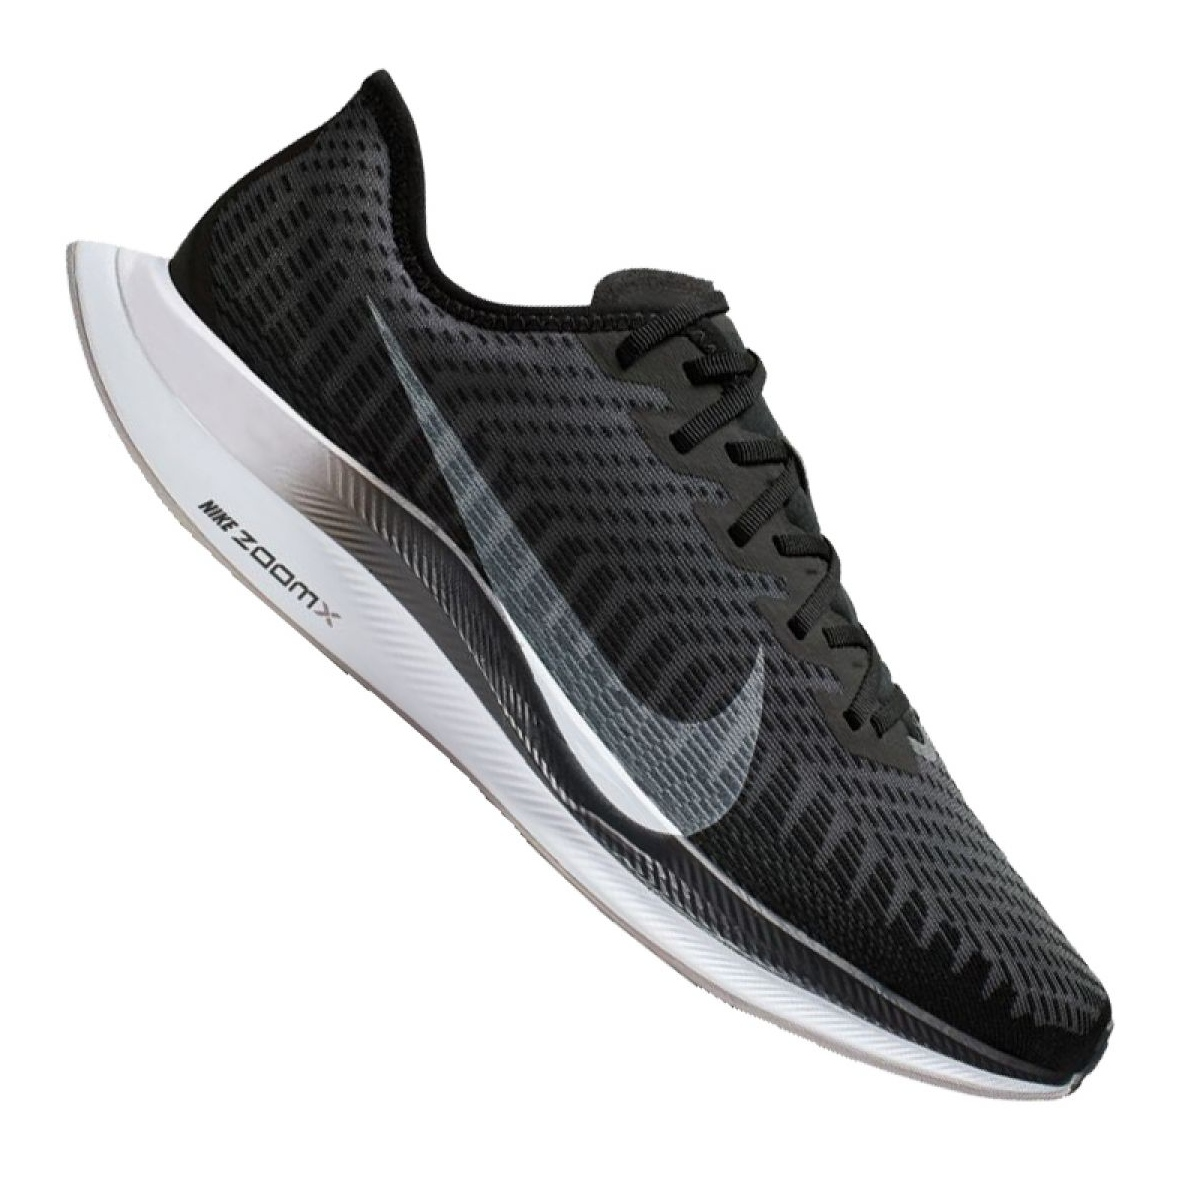 cheap for discount 7a4c2 5487d Details about Black Running shoes Nike Zoom Pegasus Turbo 2 M AT2863-001